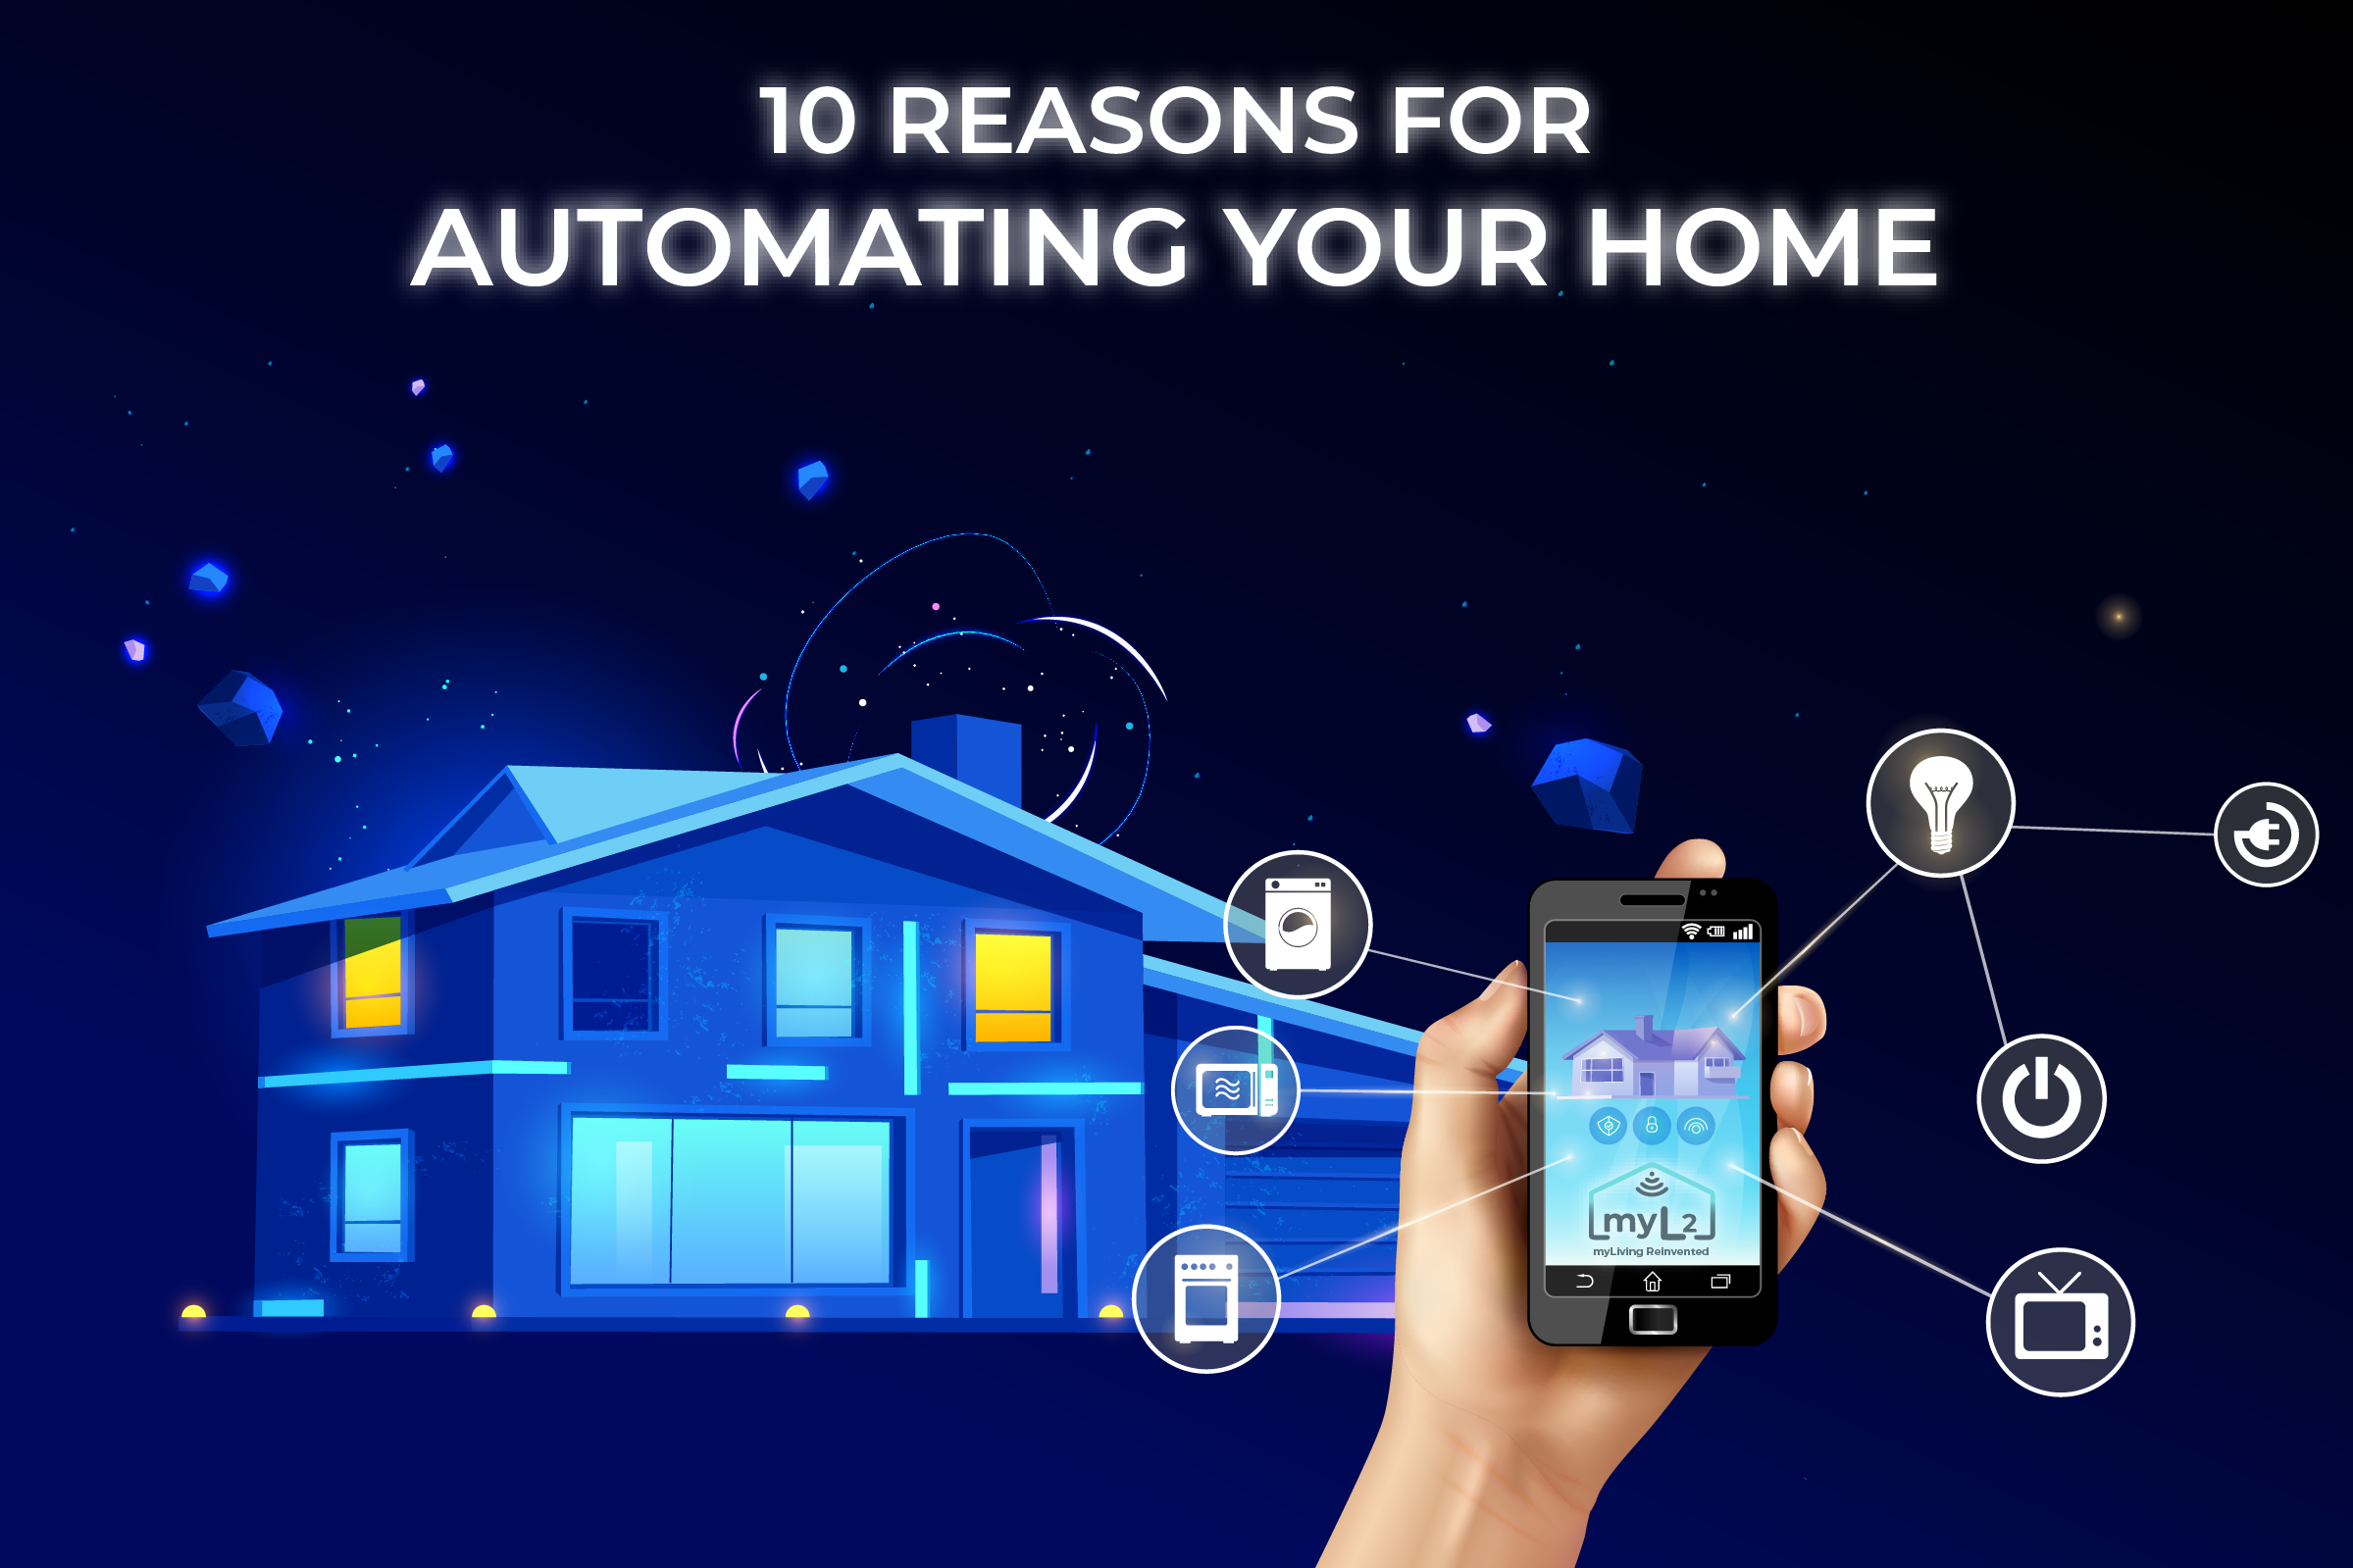 10 reasons benefits for automating your home